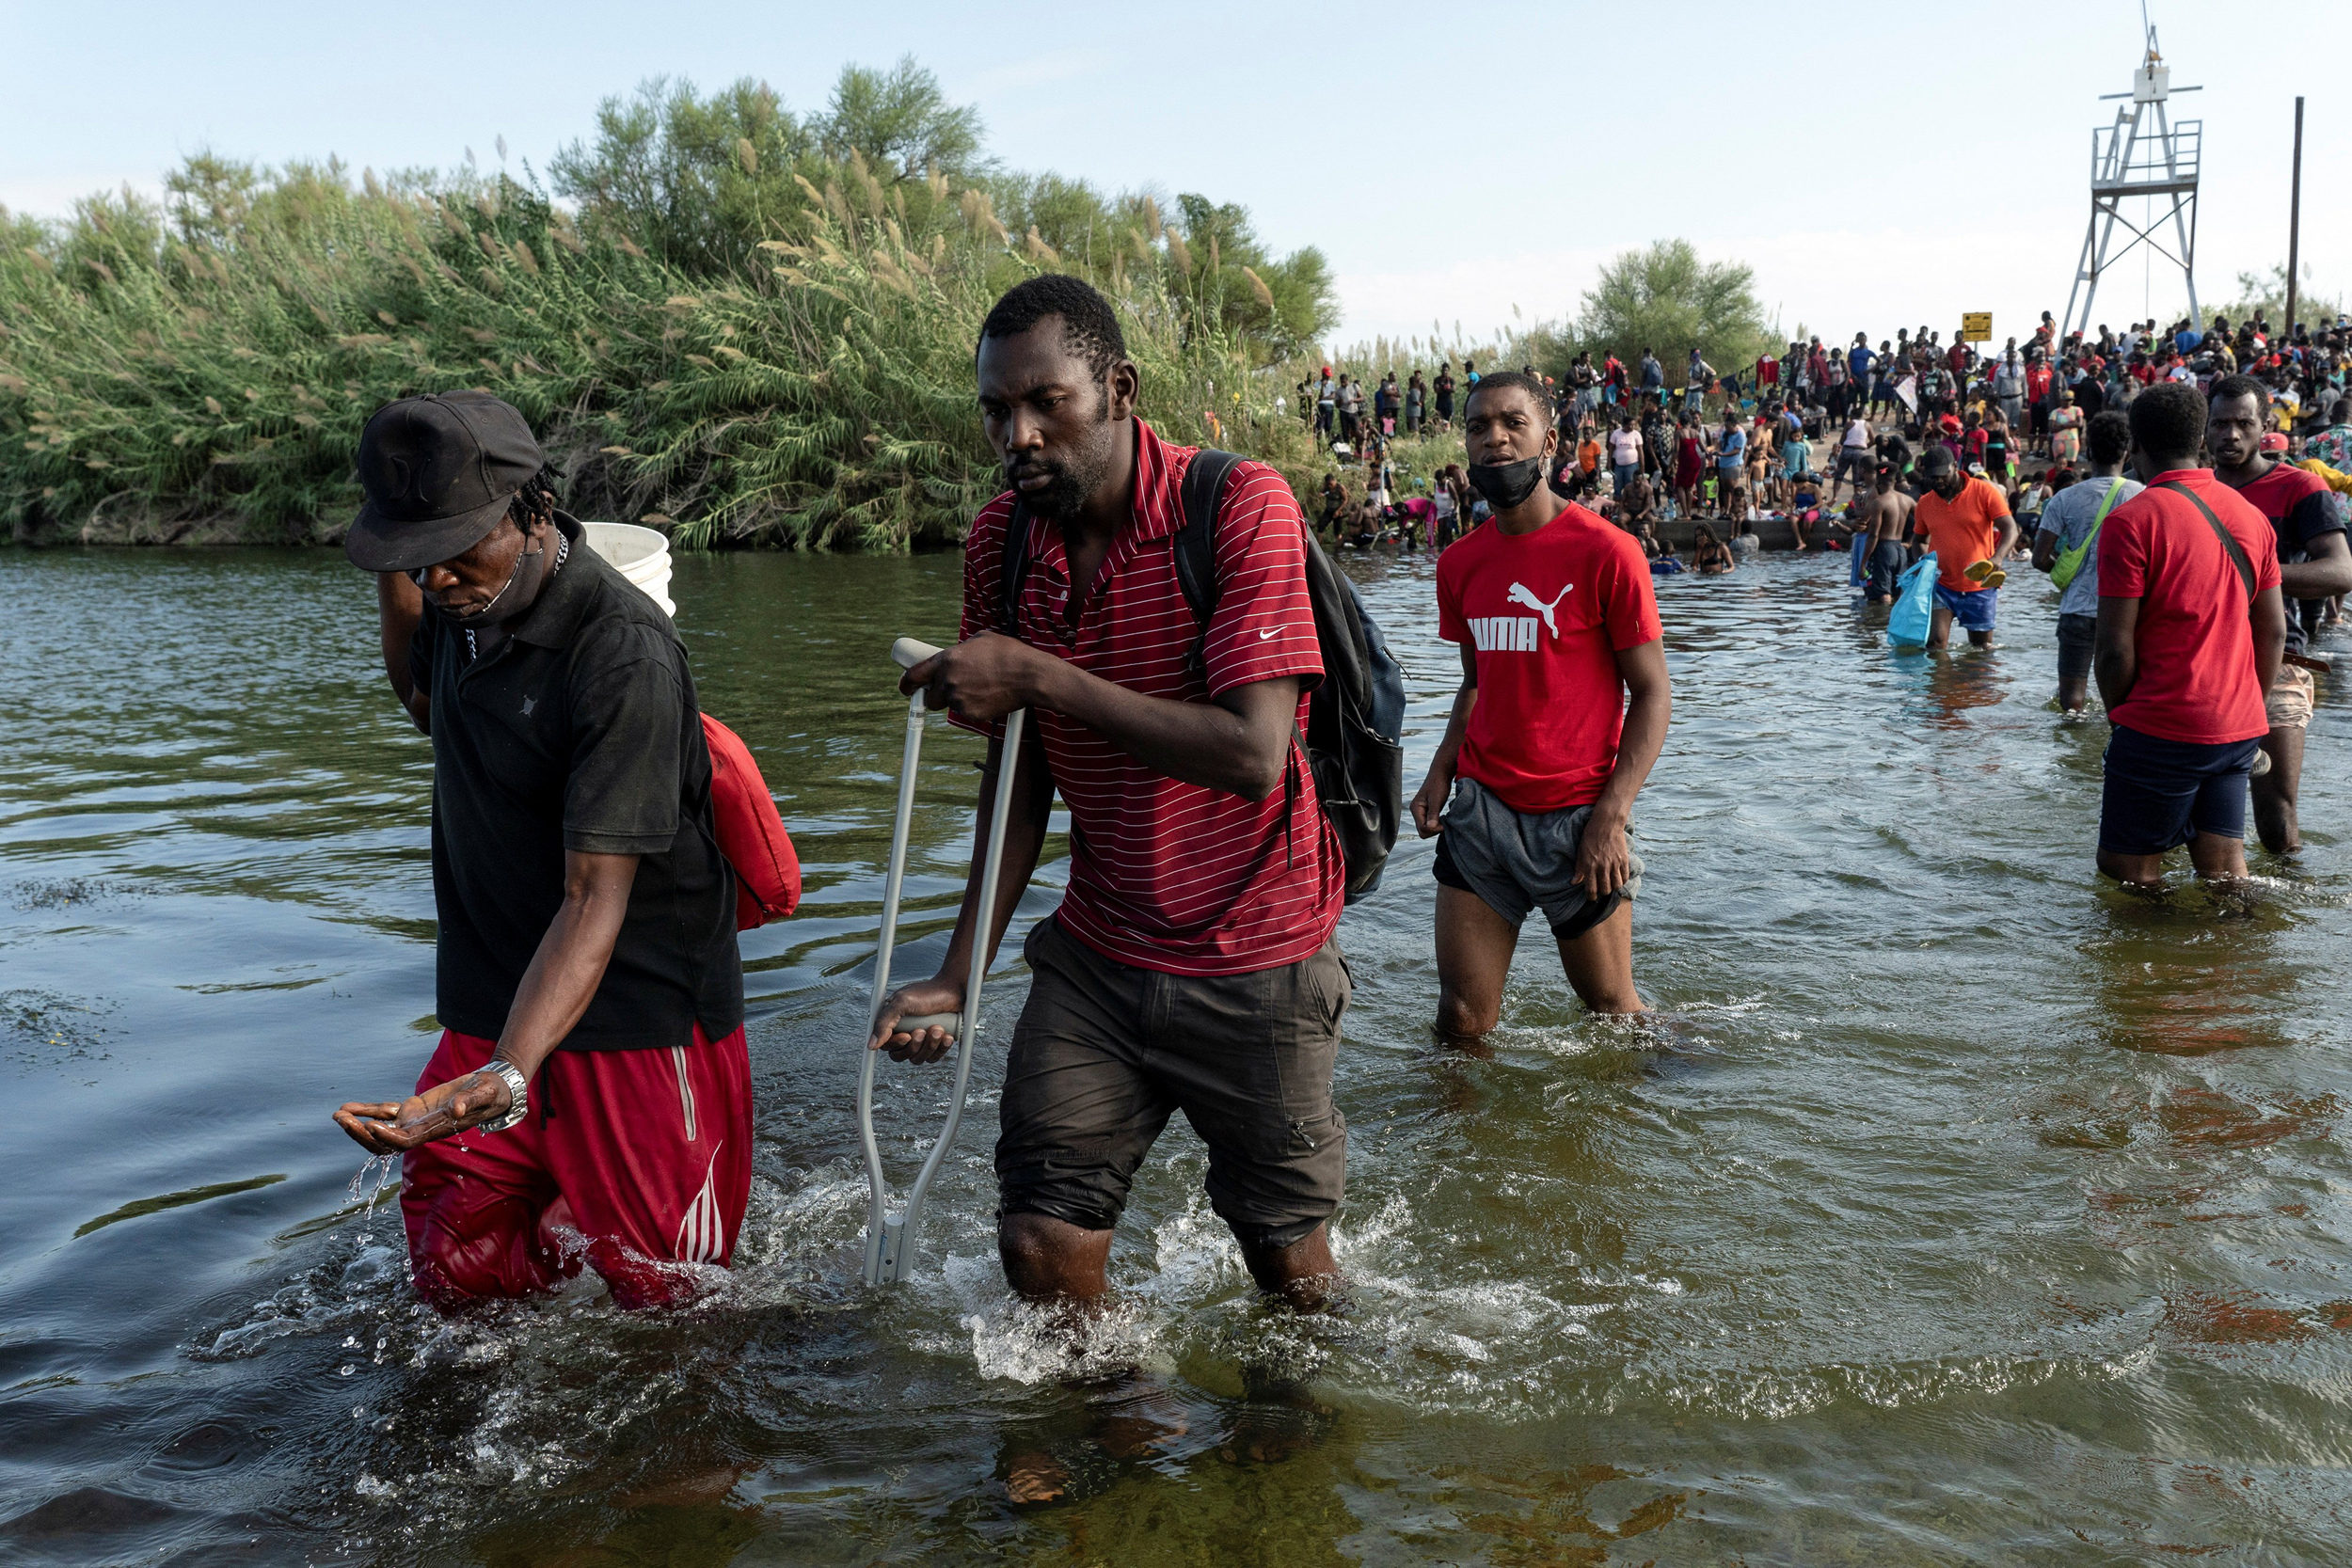 More than 10,000 migrants packed under Texas bridge, number still rising